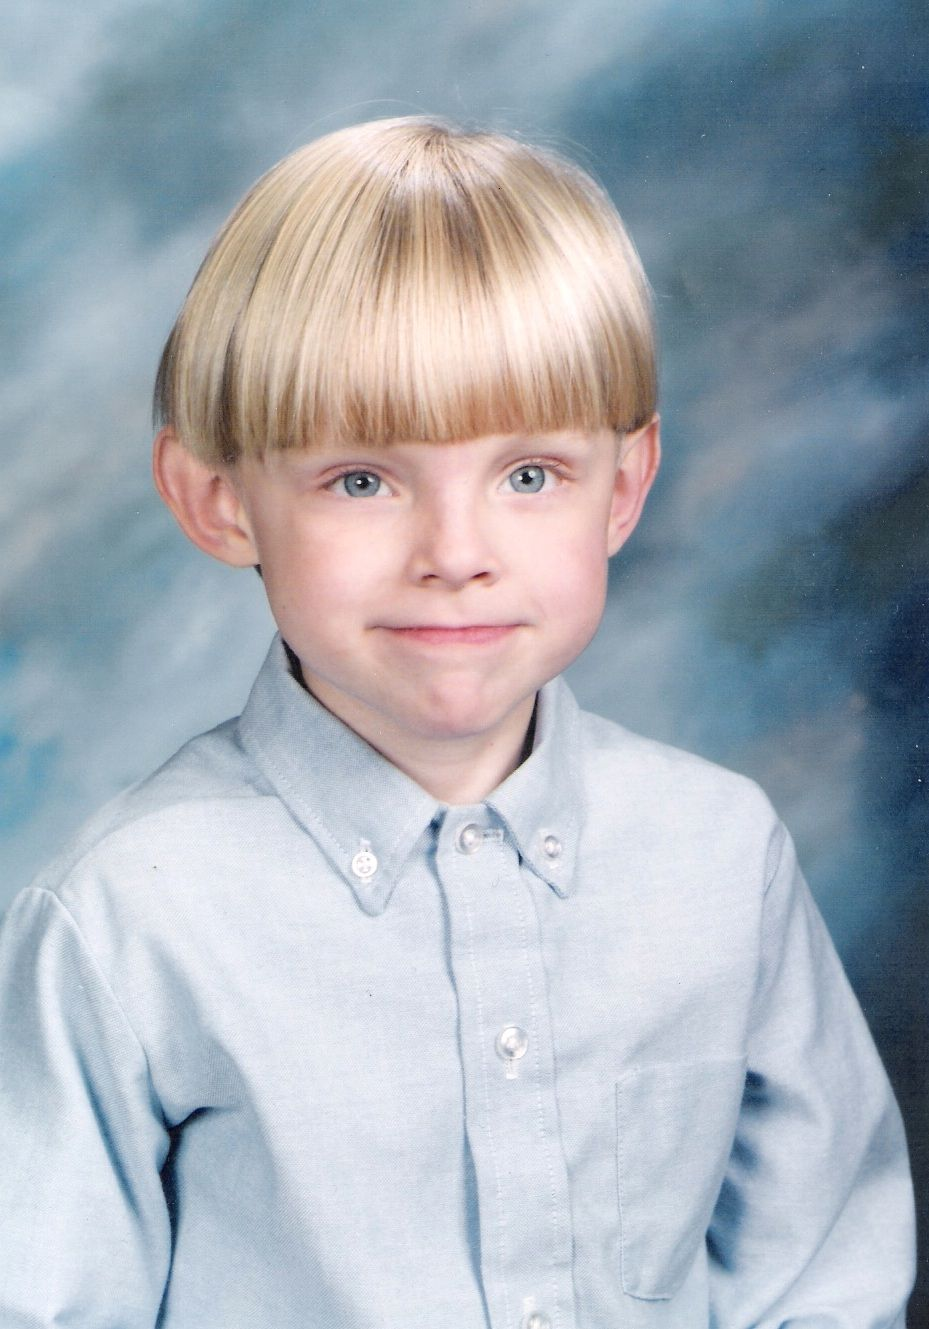 Bowl Cut Childrens Hairstyles Pinterest Bowl Cut